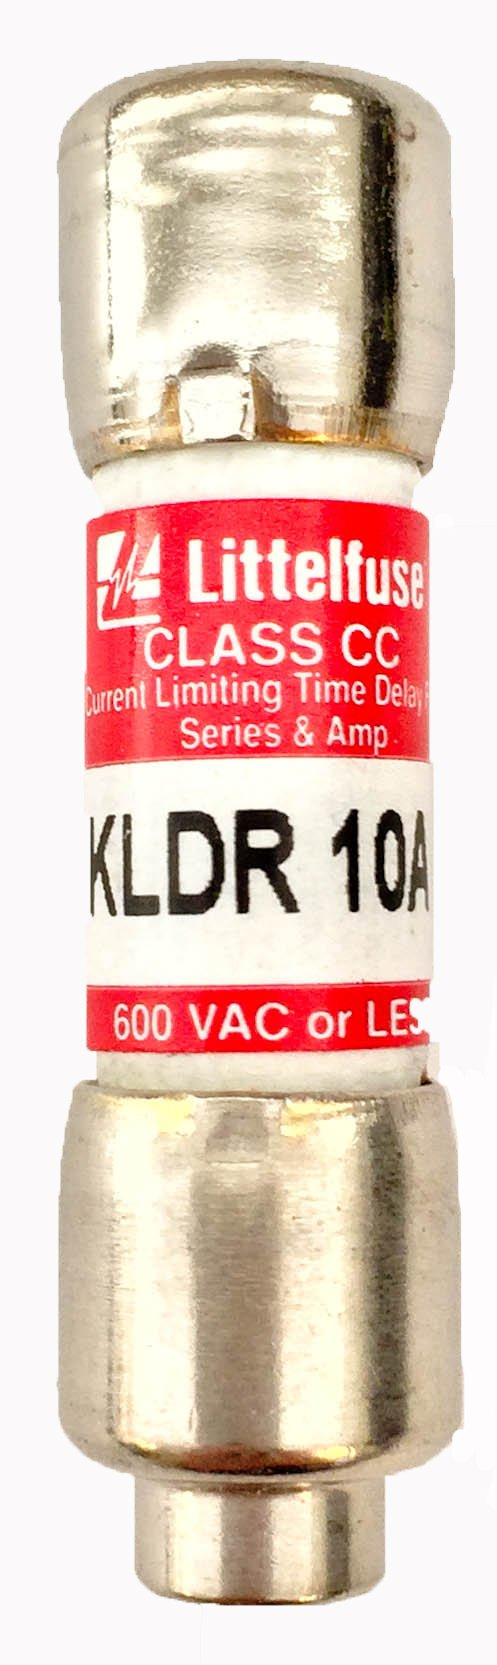 Littelfuse KLDR010.TXP Class CC Fuse, 600V, Time Delay, 10 Amp RoHS (Pack of 10)